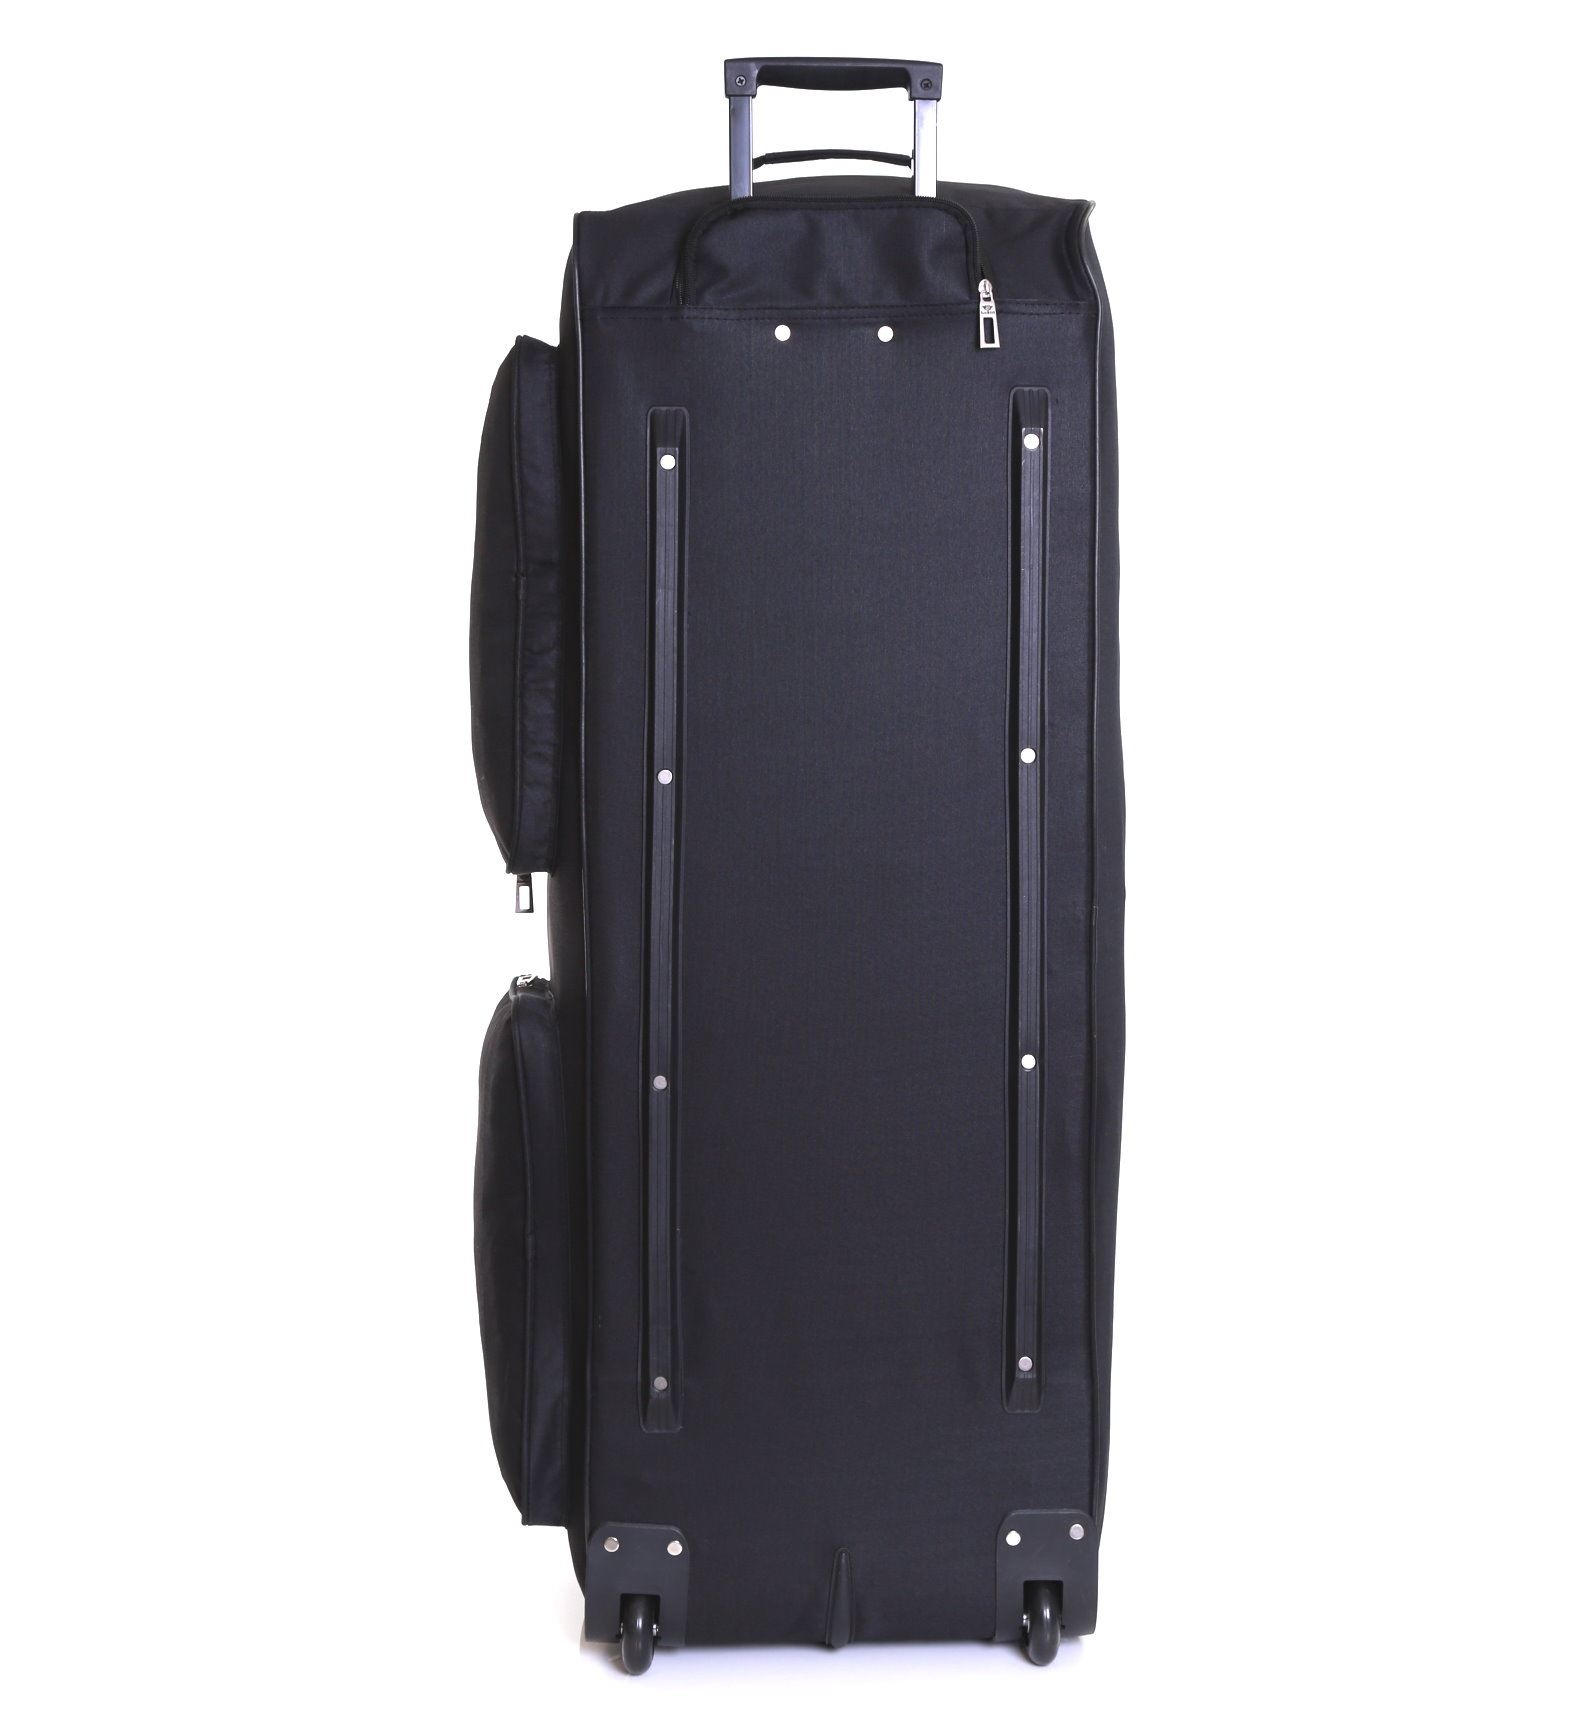 XXL Extra Large 40 Inch Wheeled Travel Trolley Luggage Suitcase ...